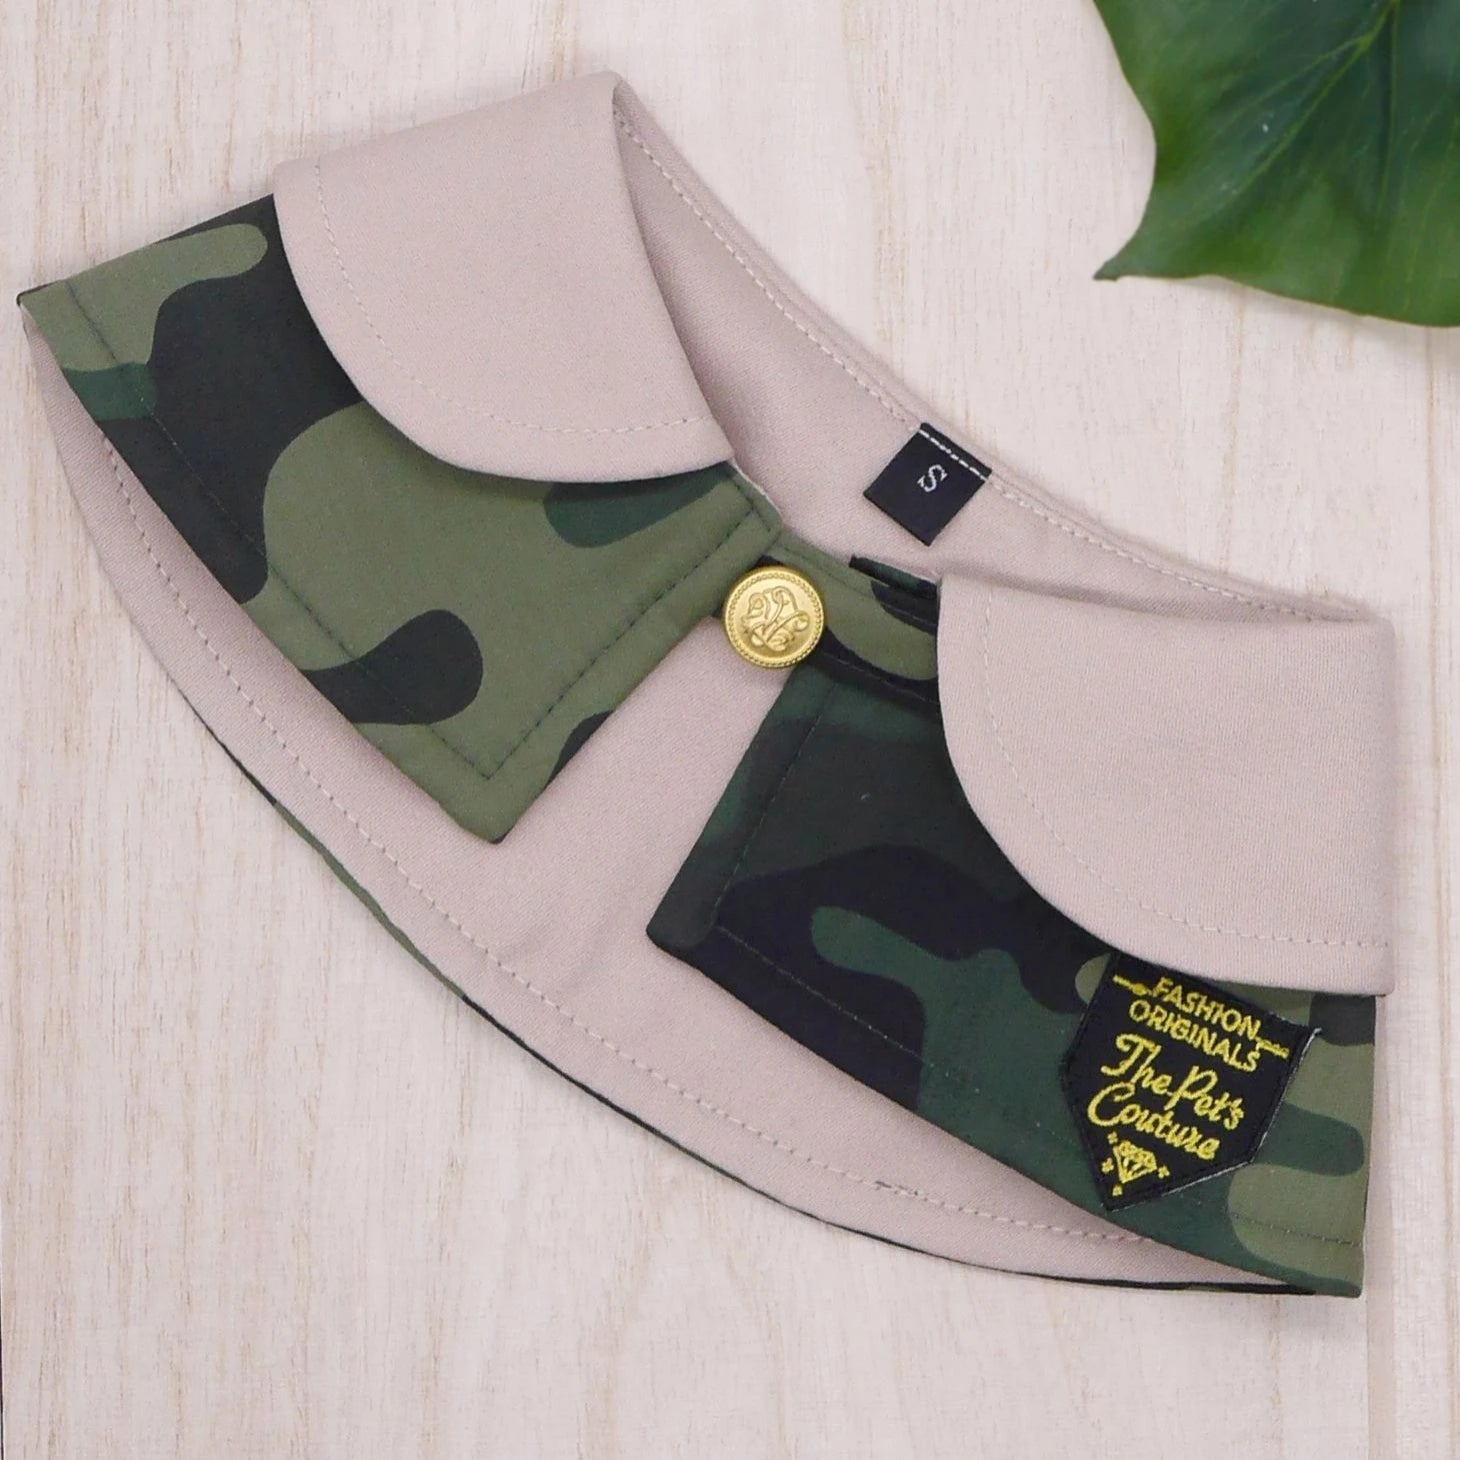 Capes - Cream Collar with Camo Print - The Pet's Couture